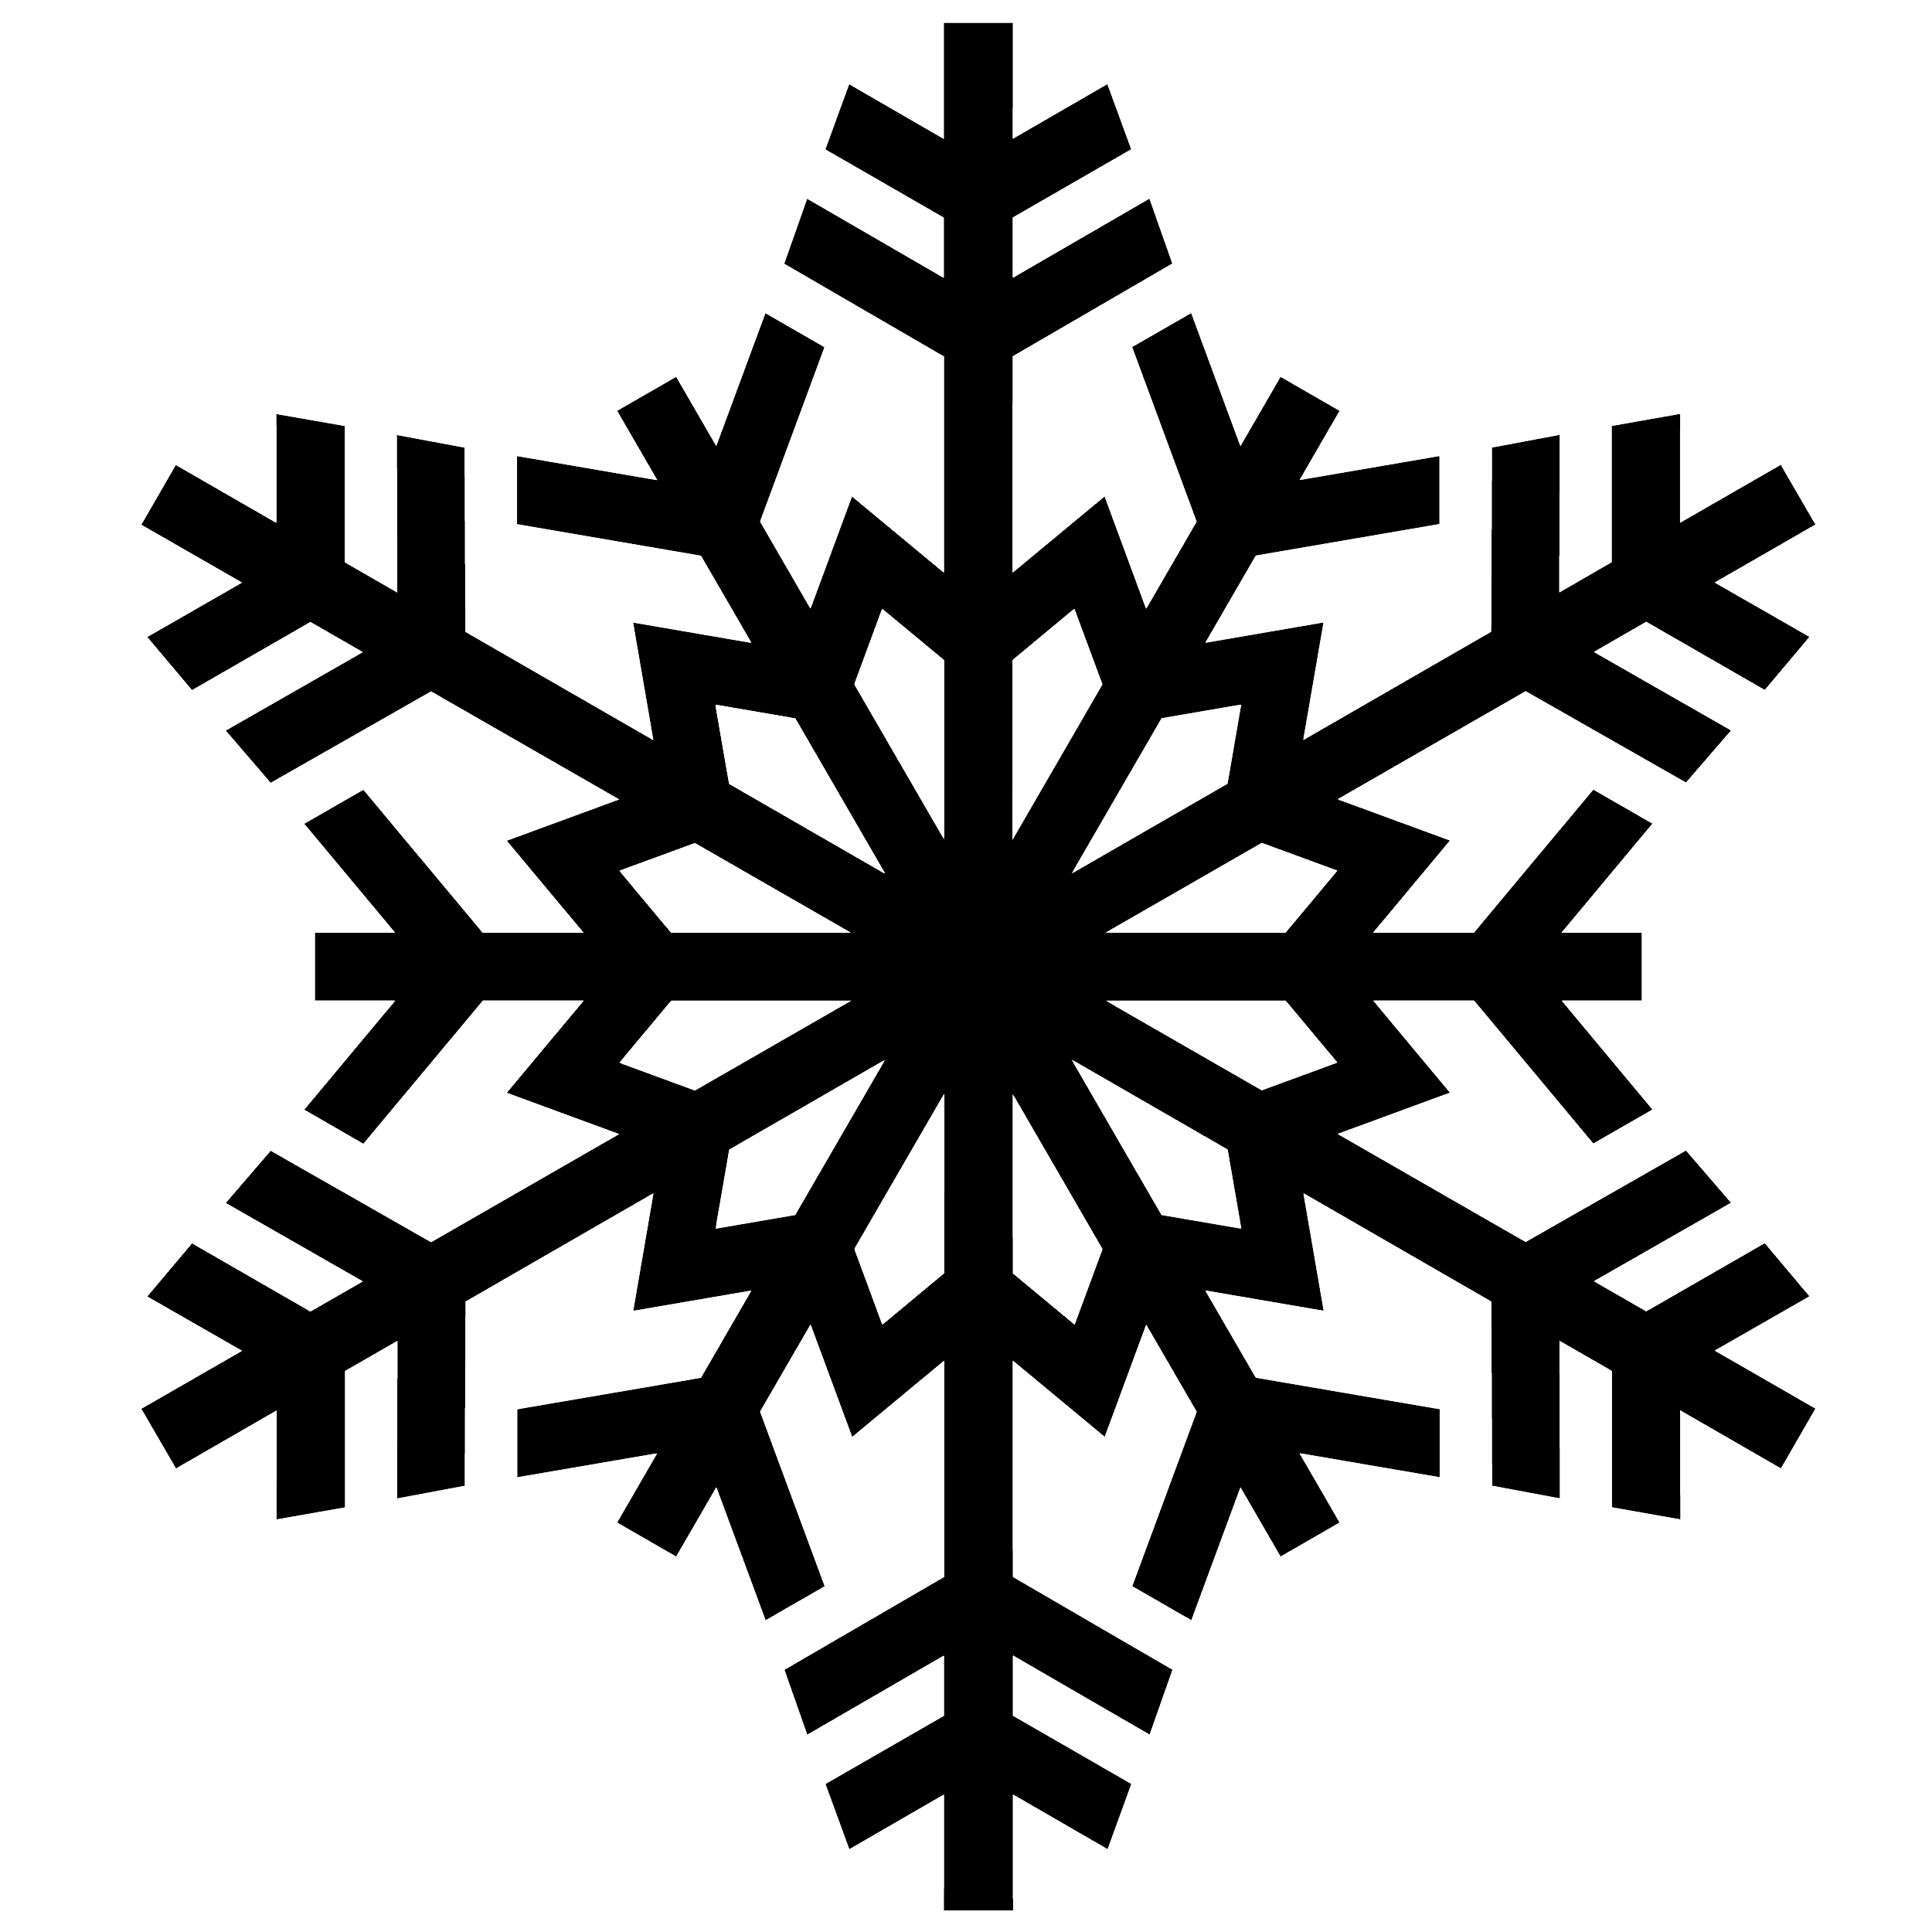 snowflakes clipart black and white